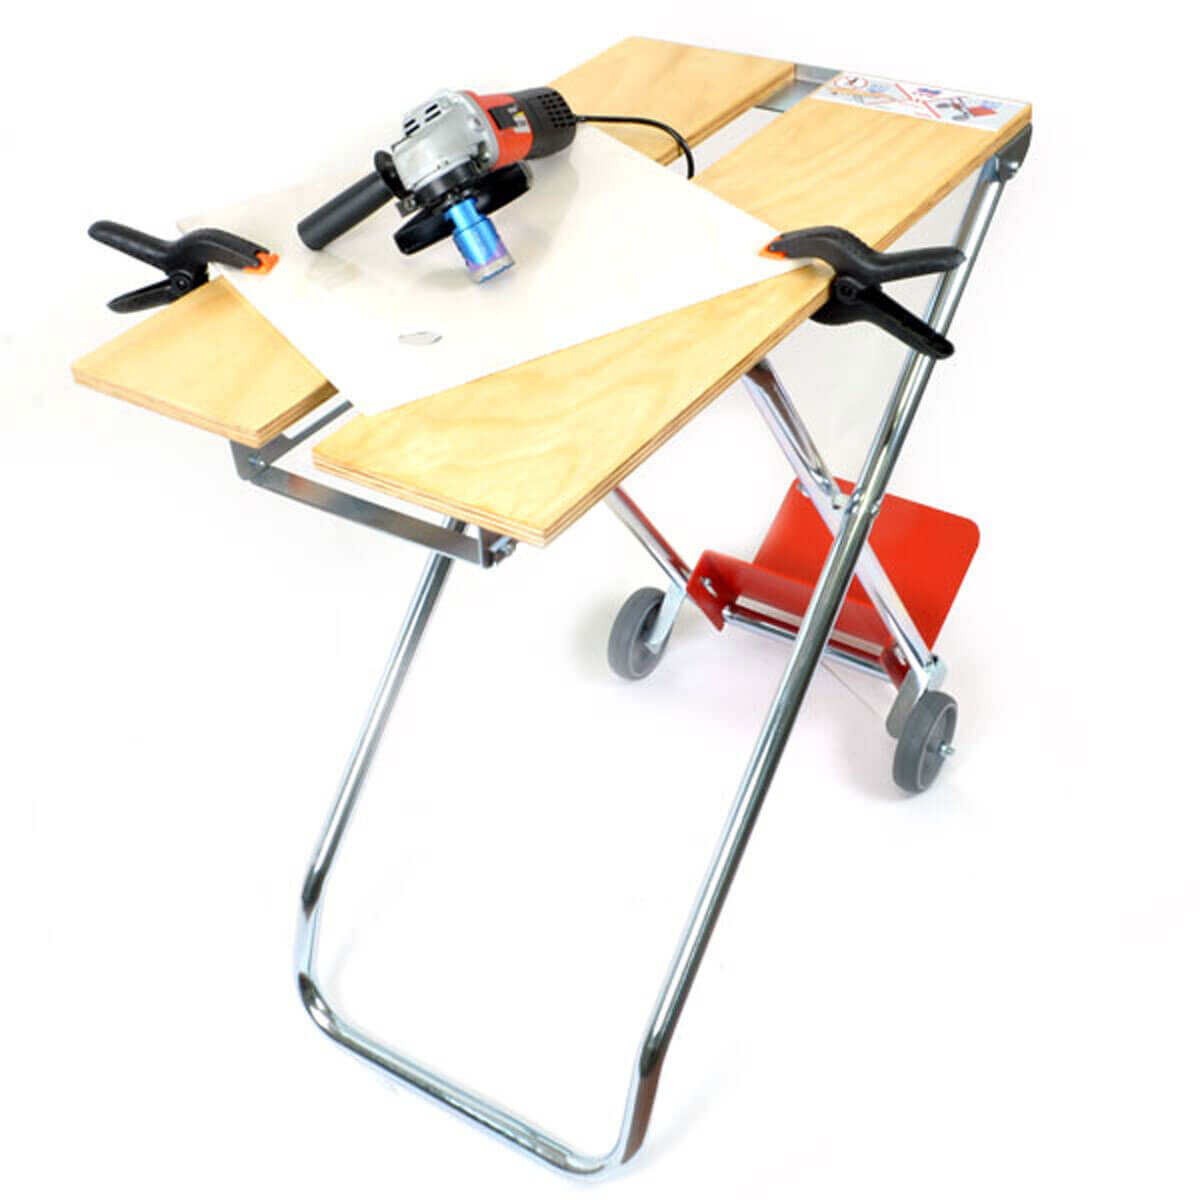 x-works portable bench for tile